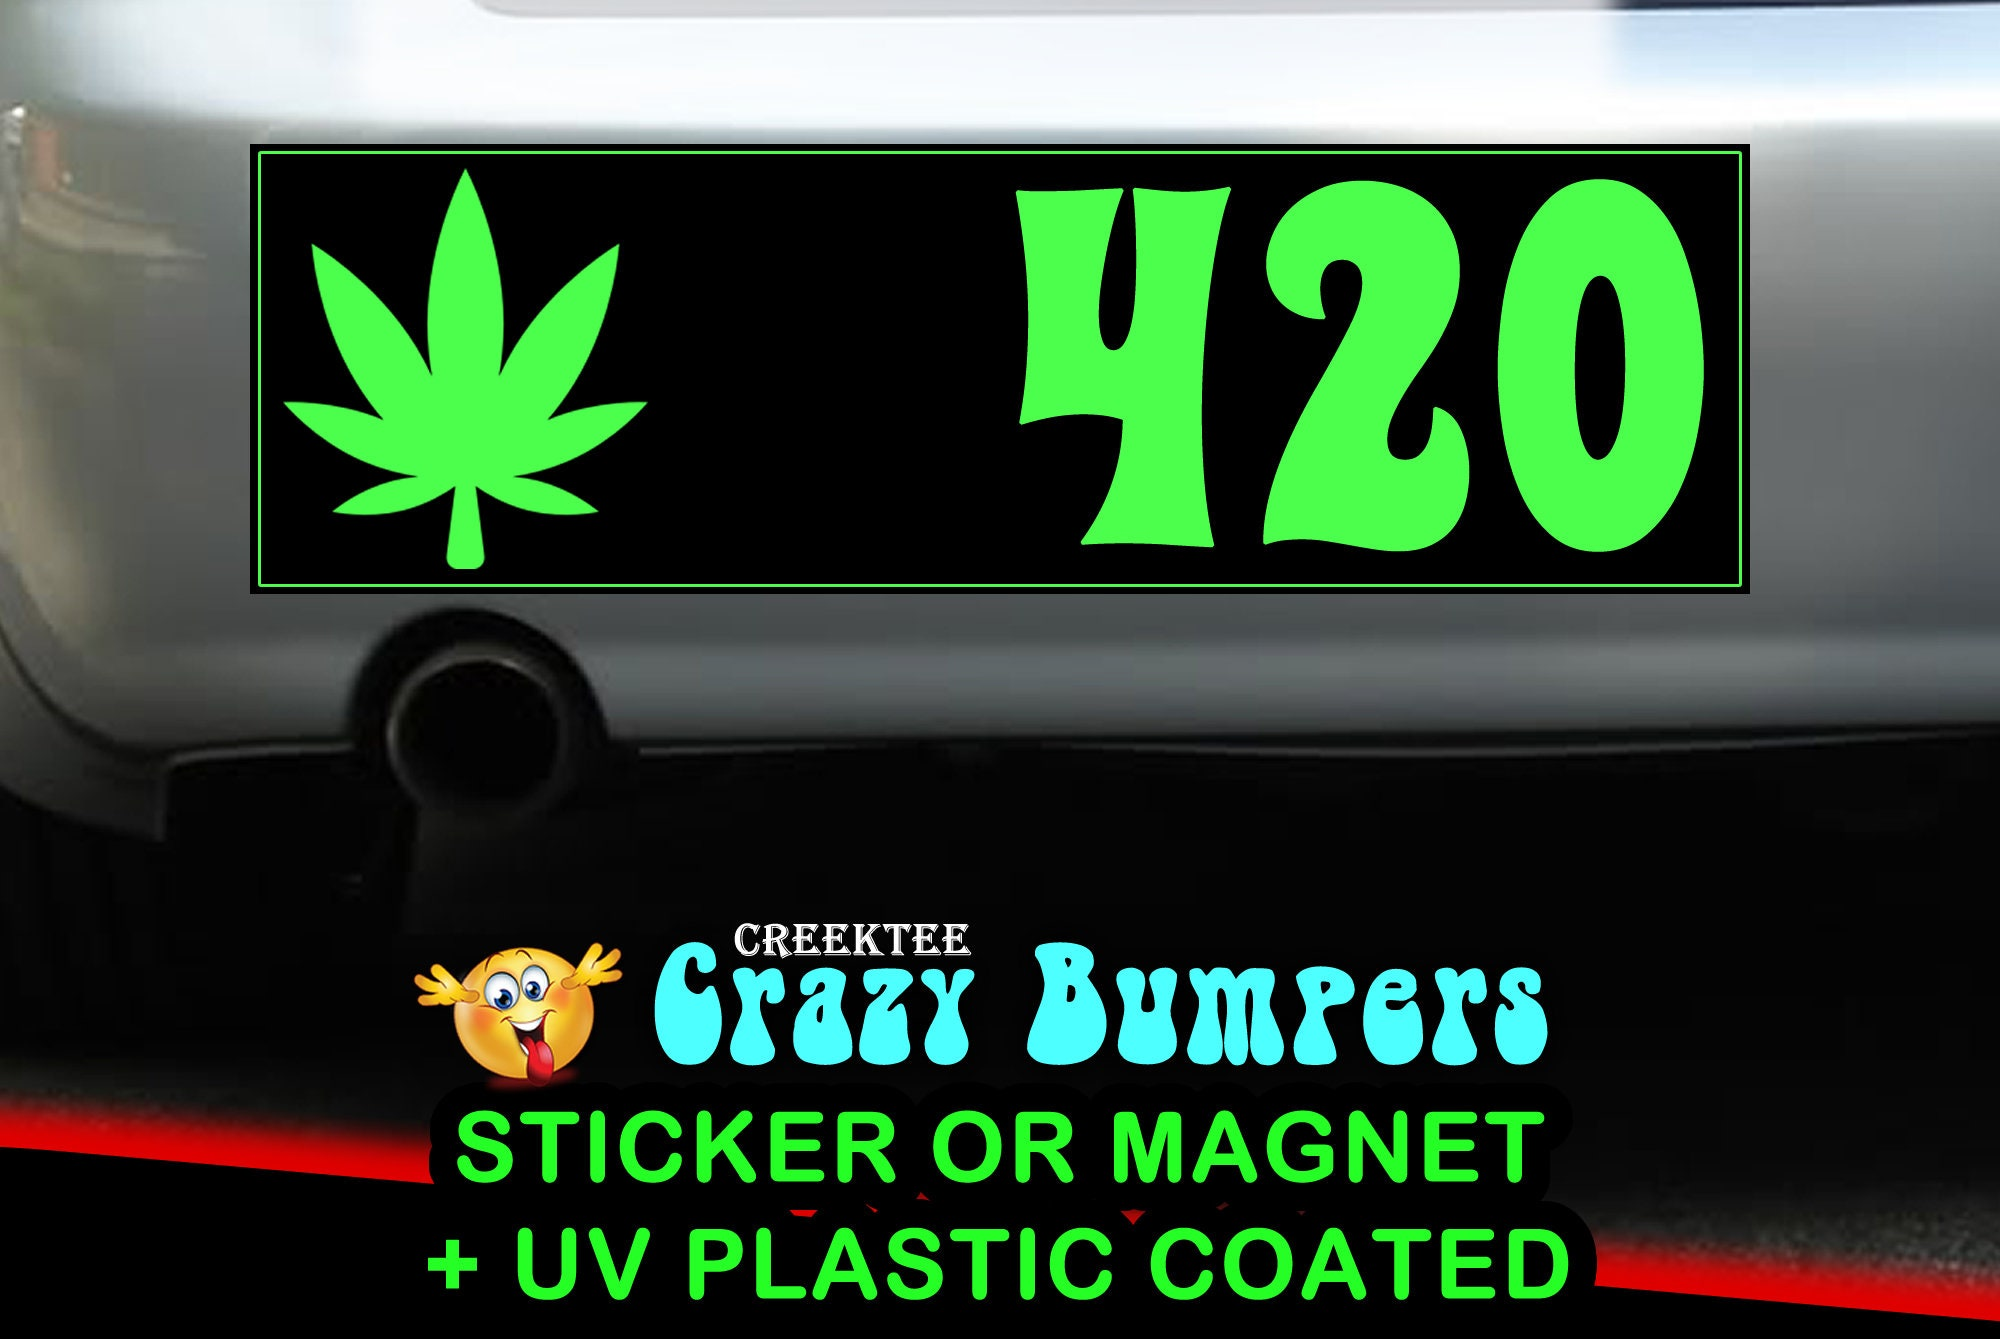 420 pot leaf Adult 10 x 3 Bumper Sticker or Magnetic Bumper Sticker Available